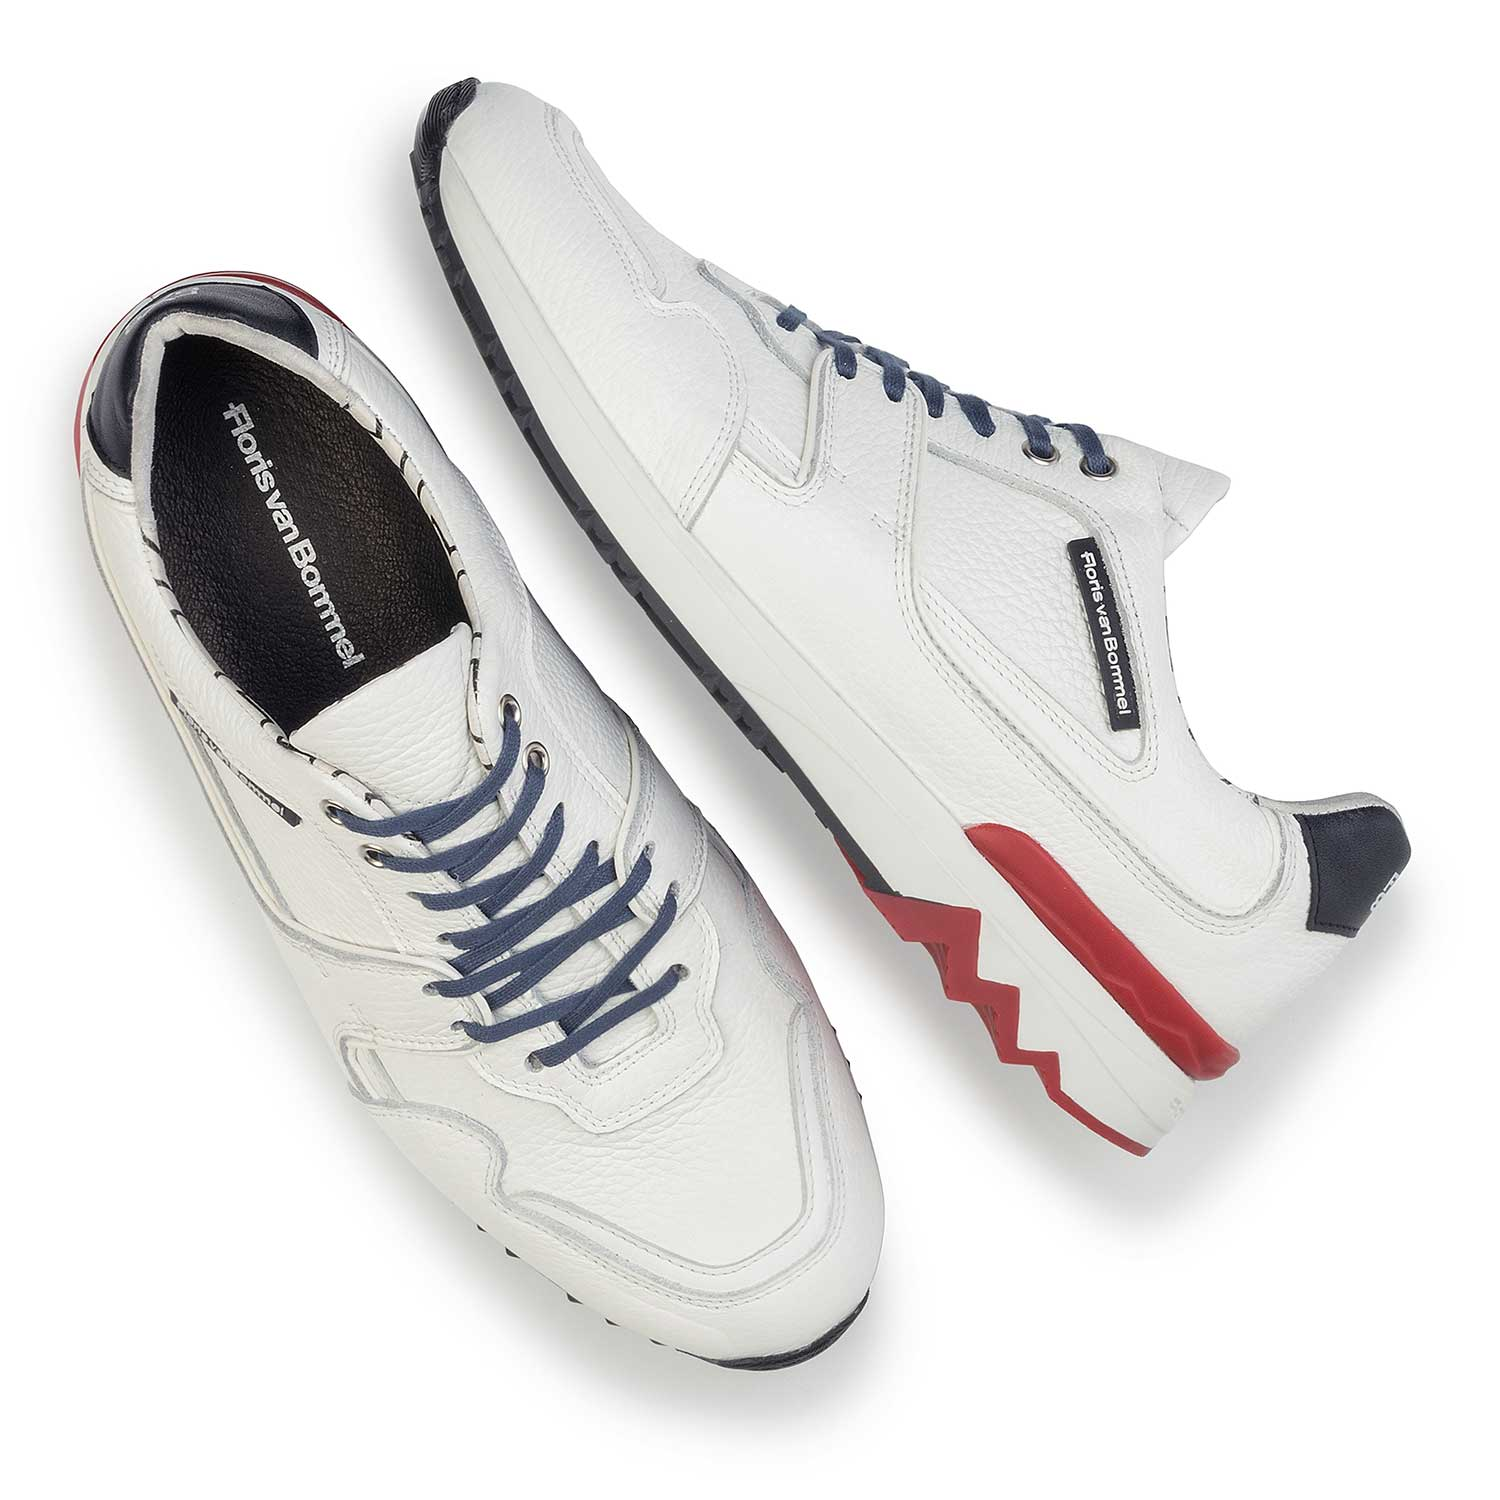 16220/01 - White calf's leather sneaker